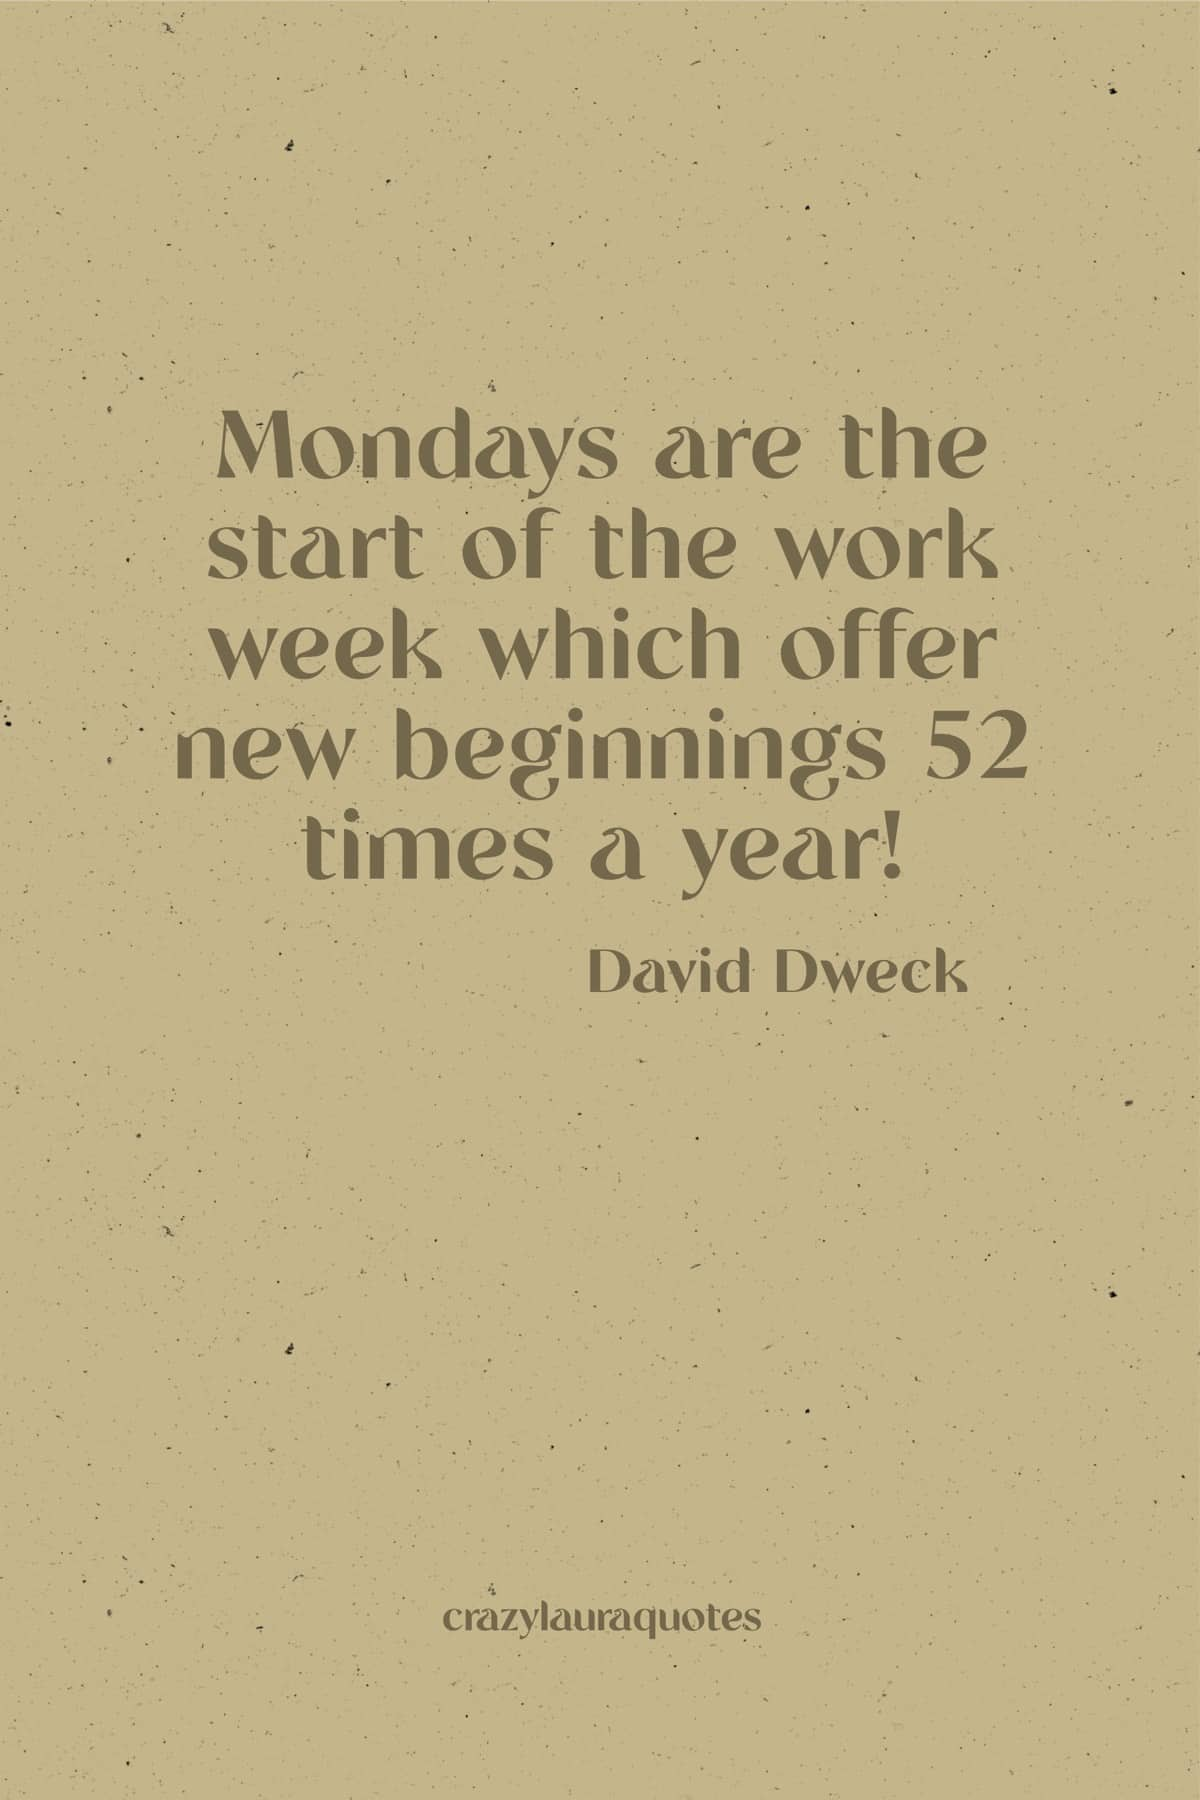 monday motivation by david dweck